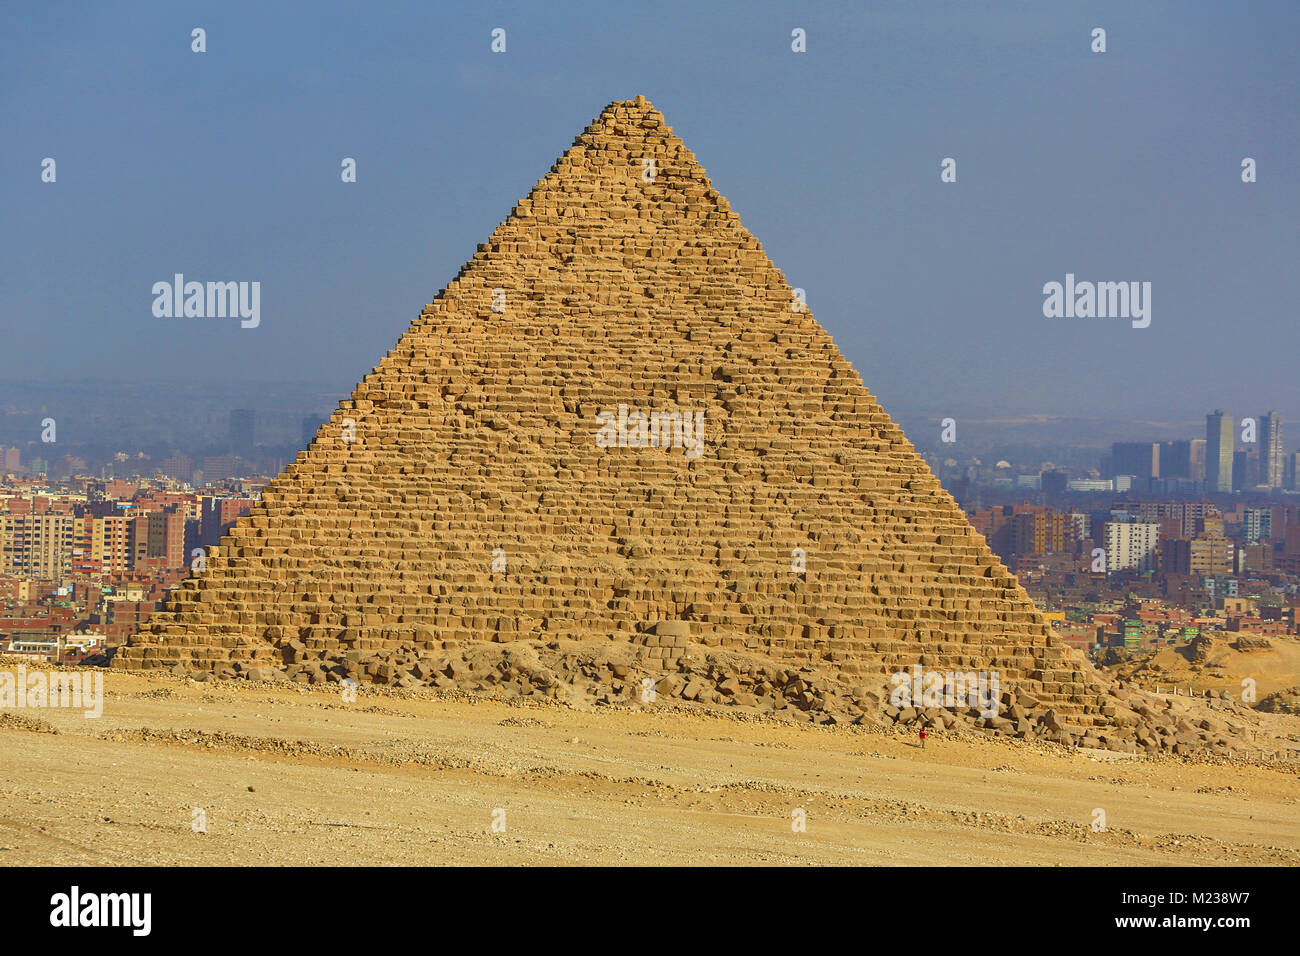 The Pyramid of Menkaure on the Giza Plateau, Cairo, Egypt - Stock Image